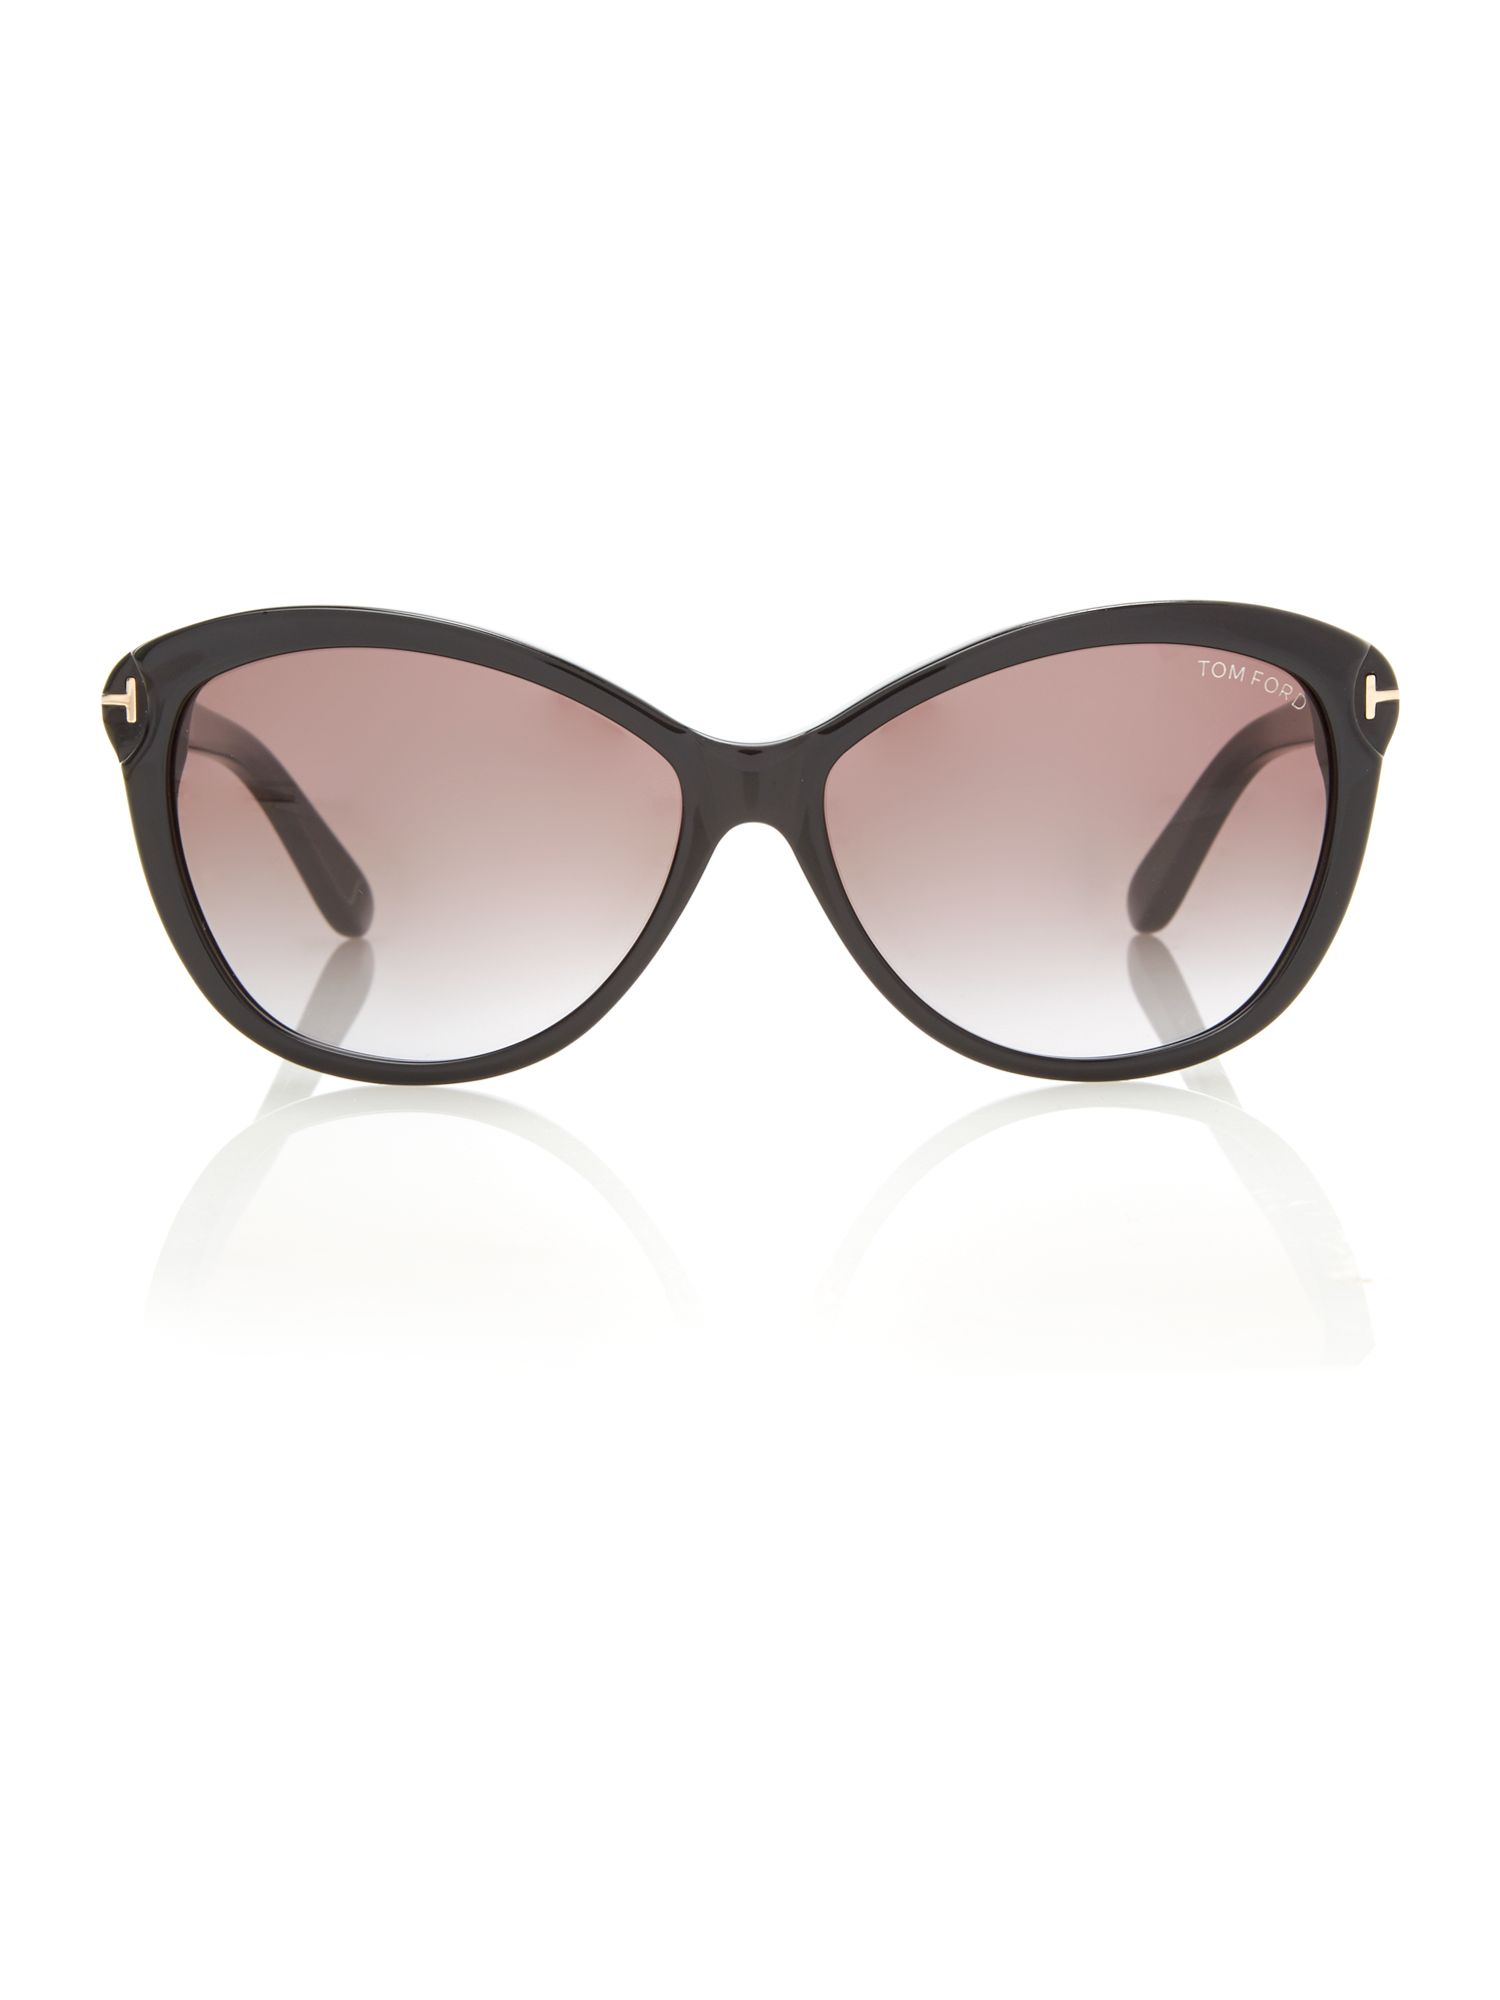 Women`s round sunglasses